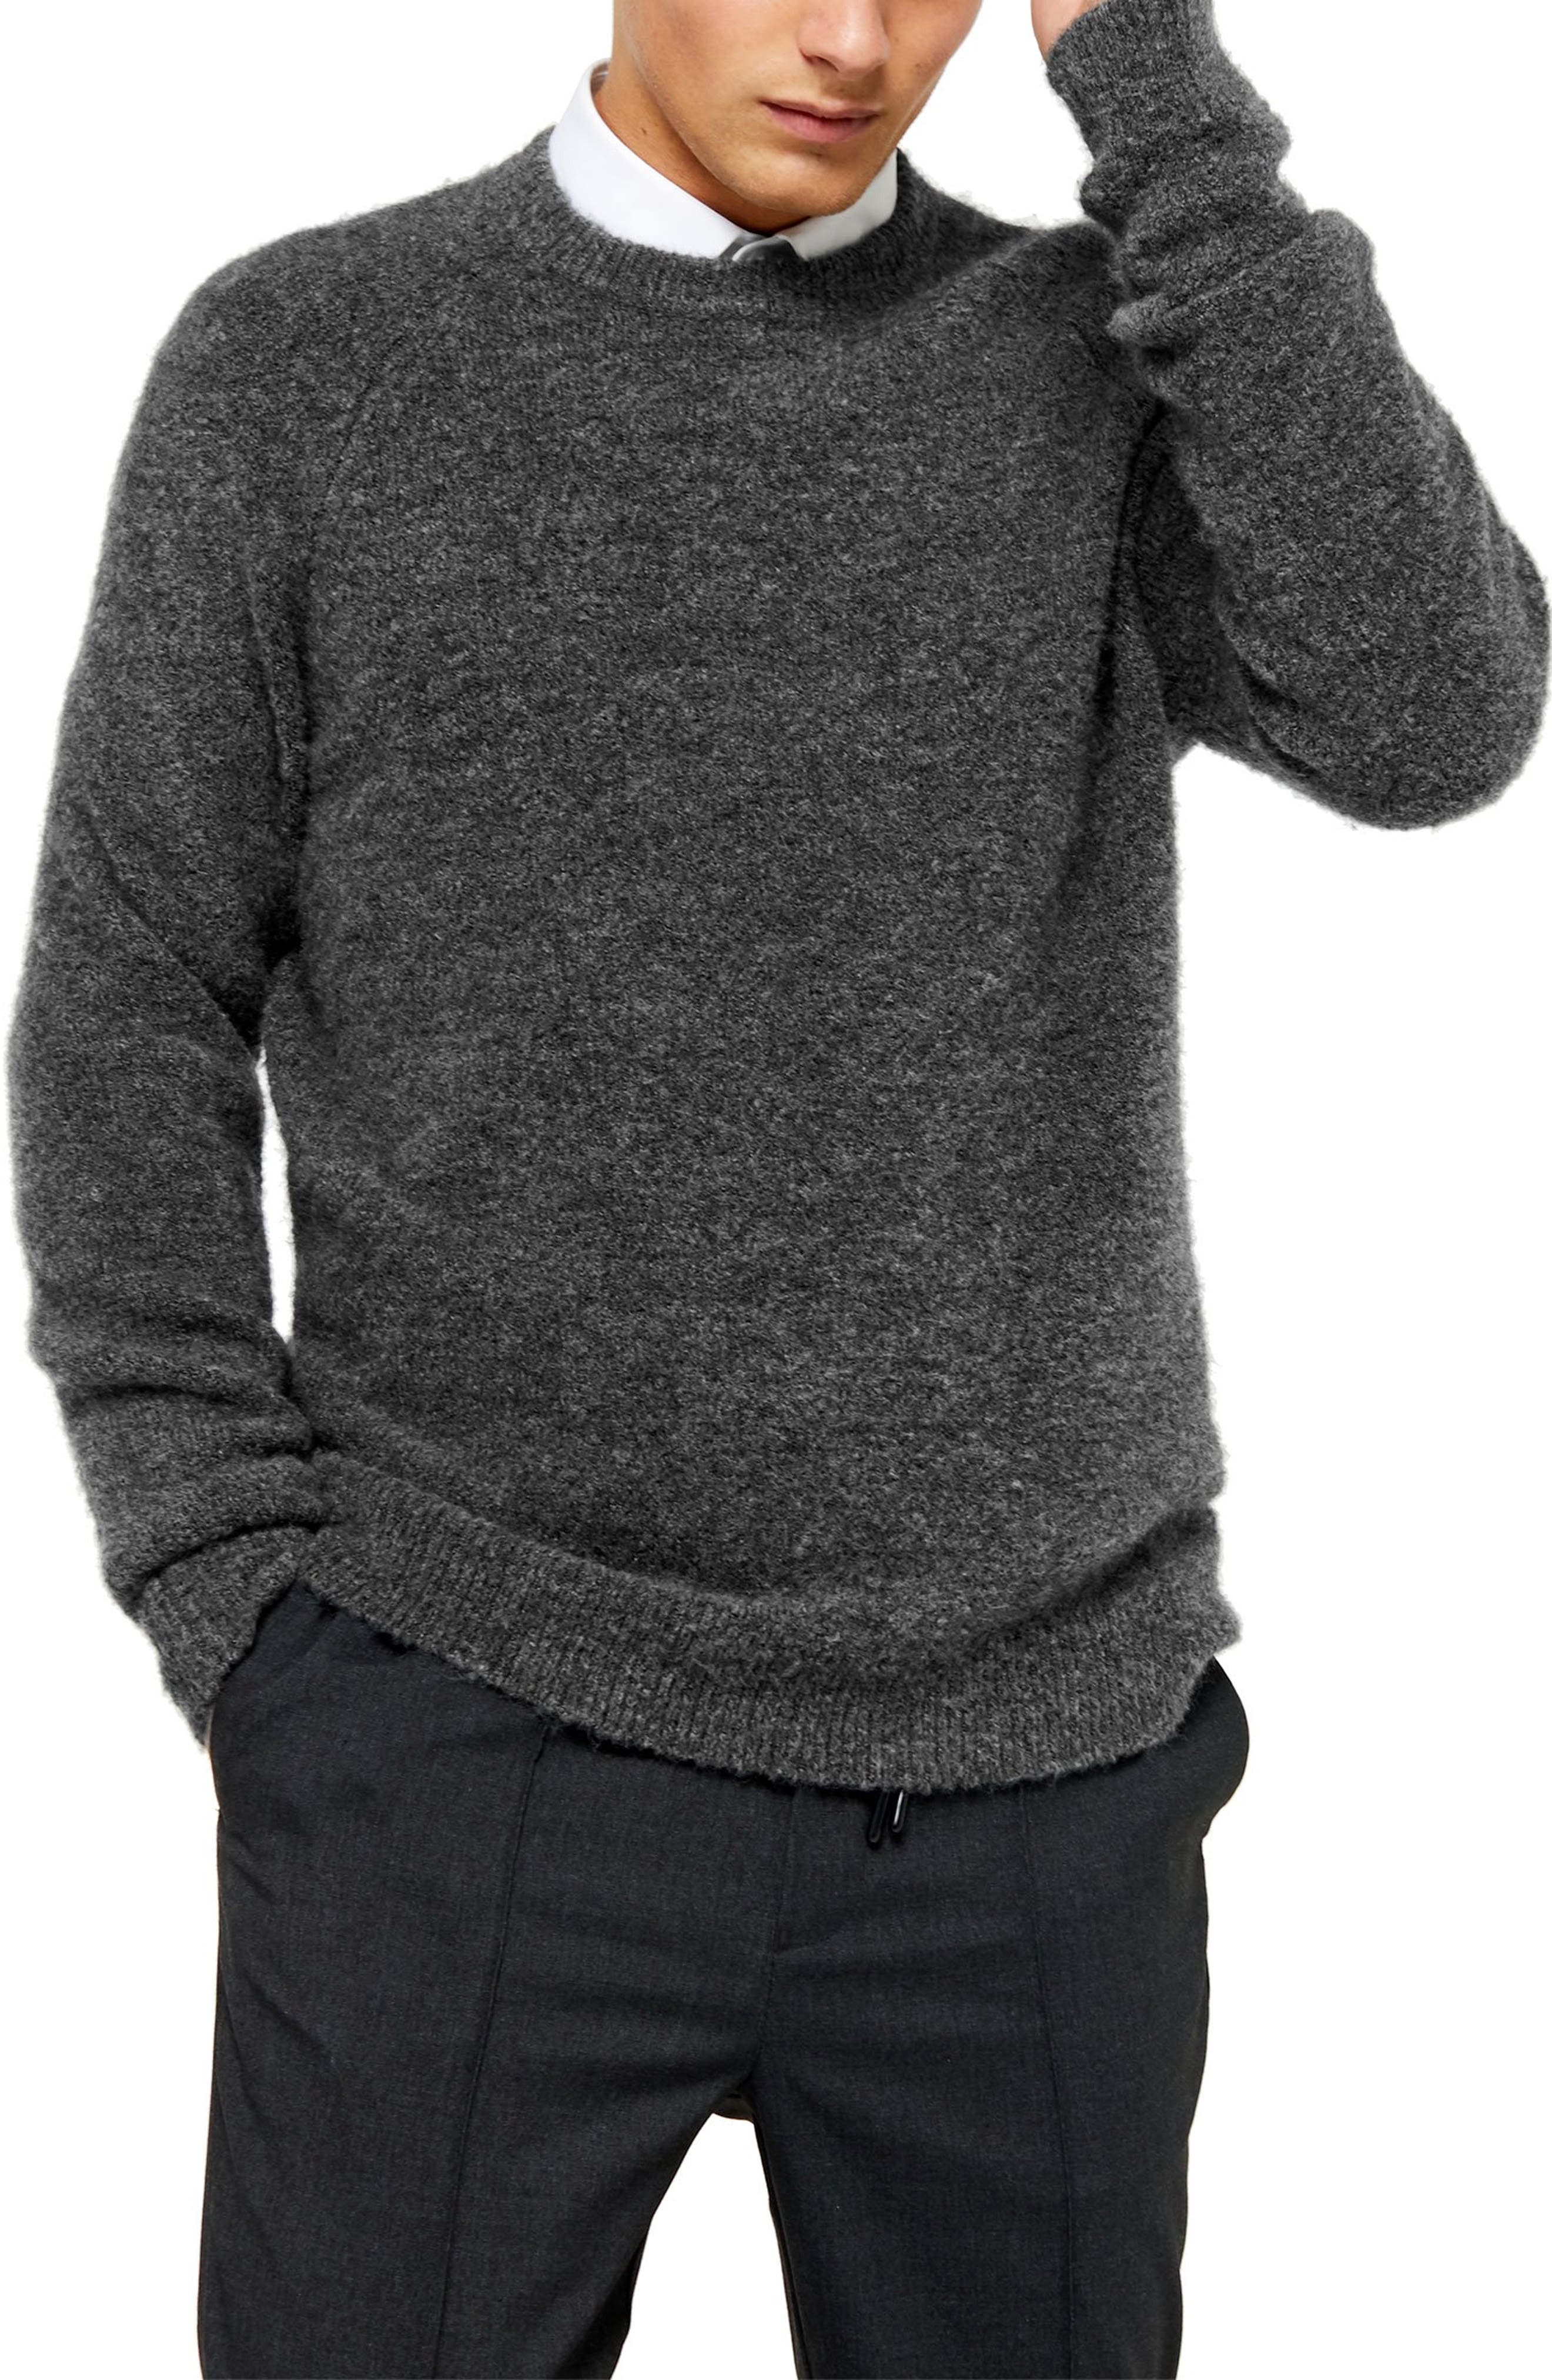 Men's Vintage Sweaters – 1920s to 1960s Retro Jumpers Mens Topman Harlow Classic Fit Solid Crewneck Sweater $55.00 AT vintagedancer.com